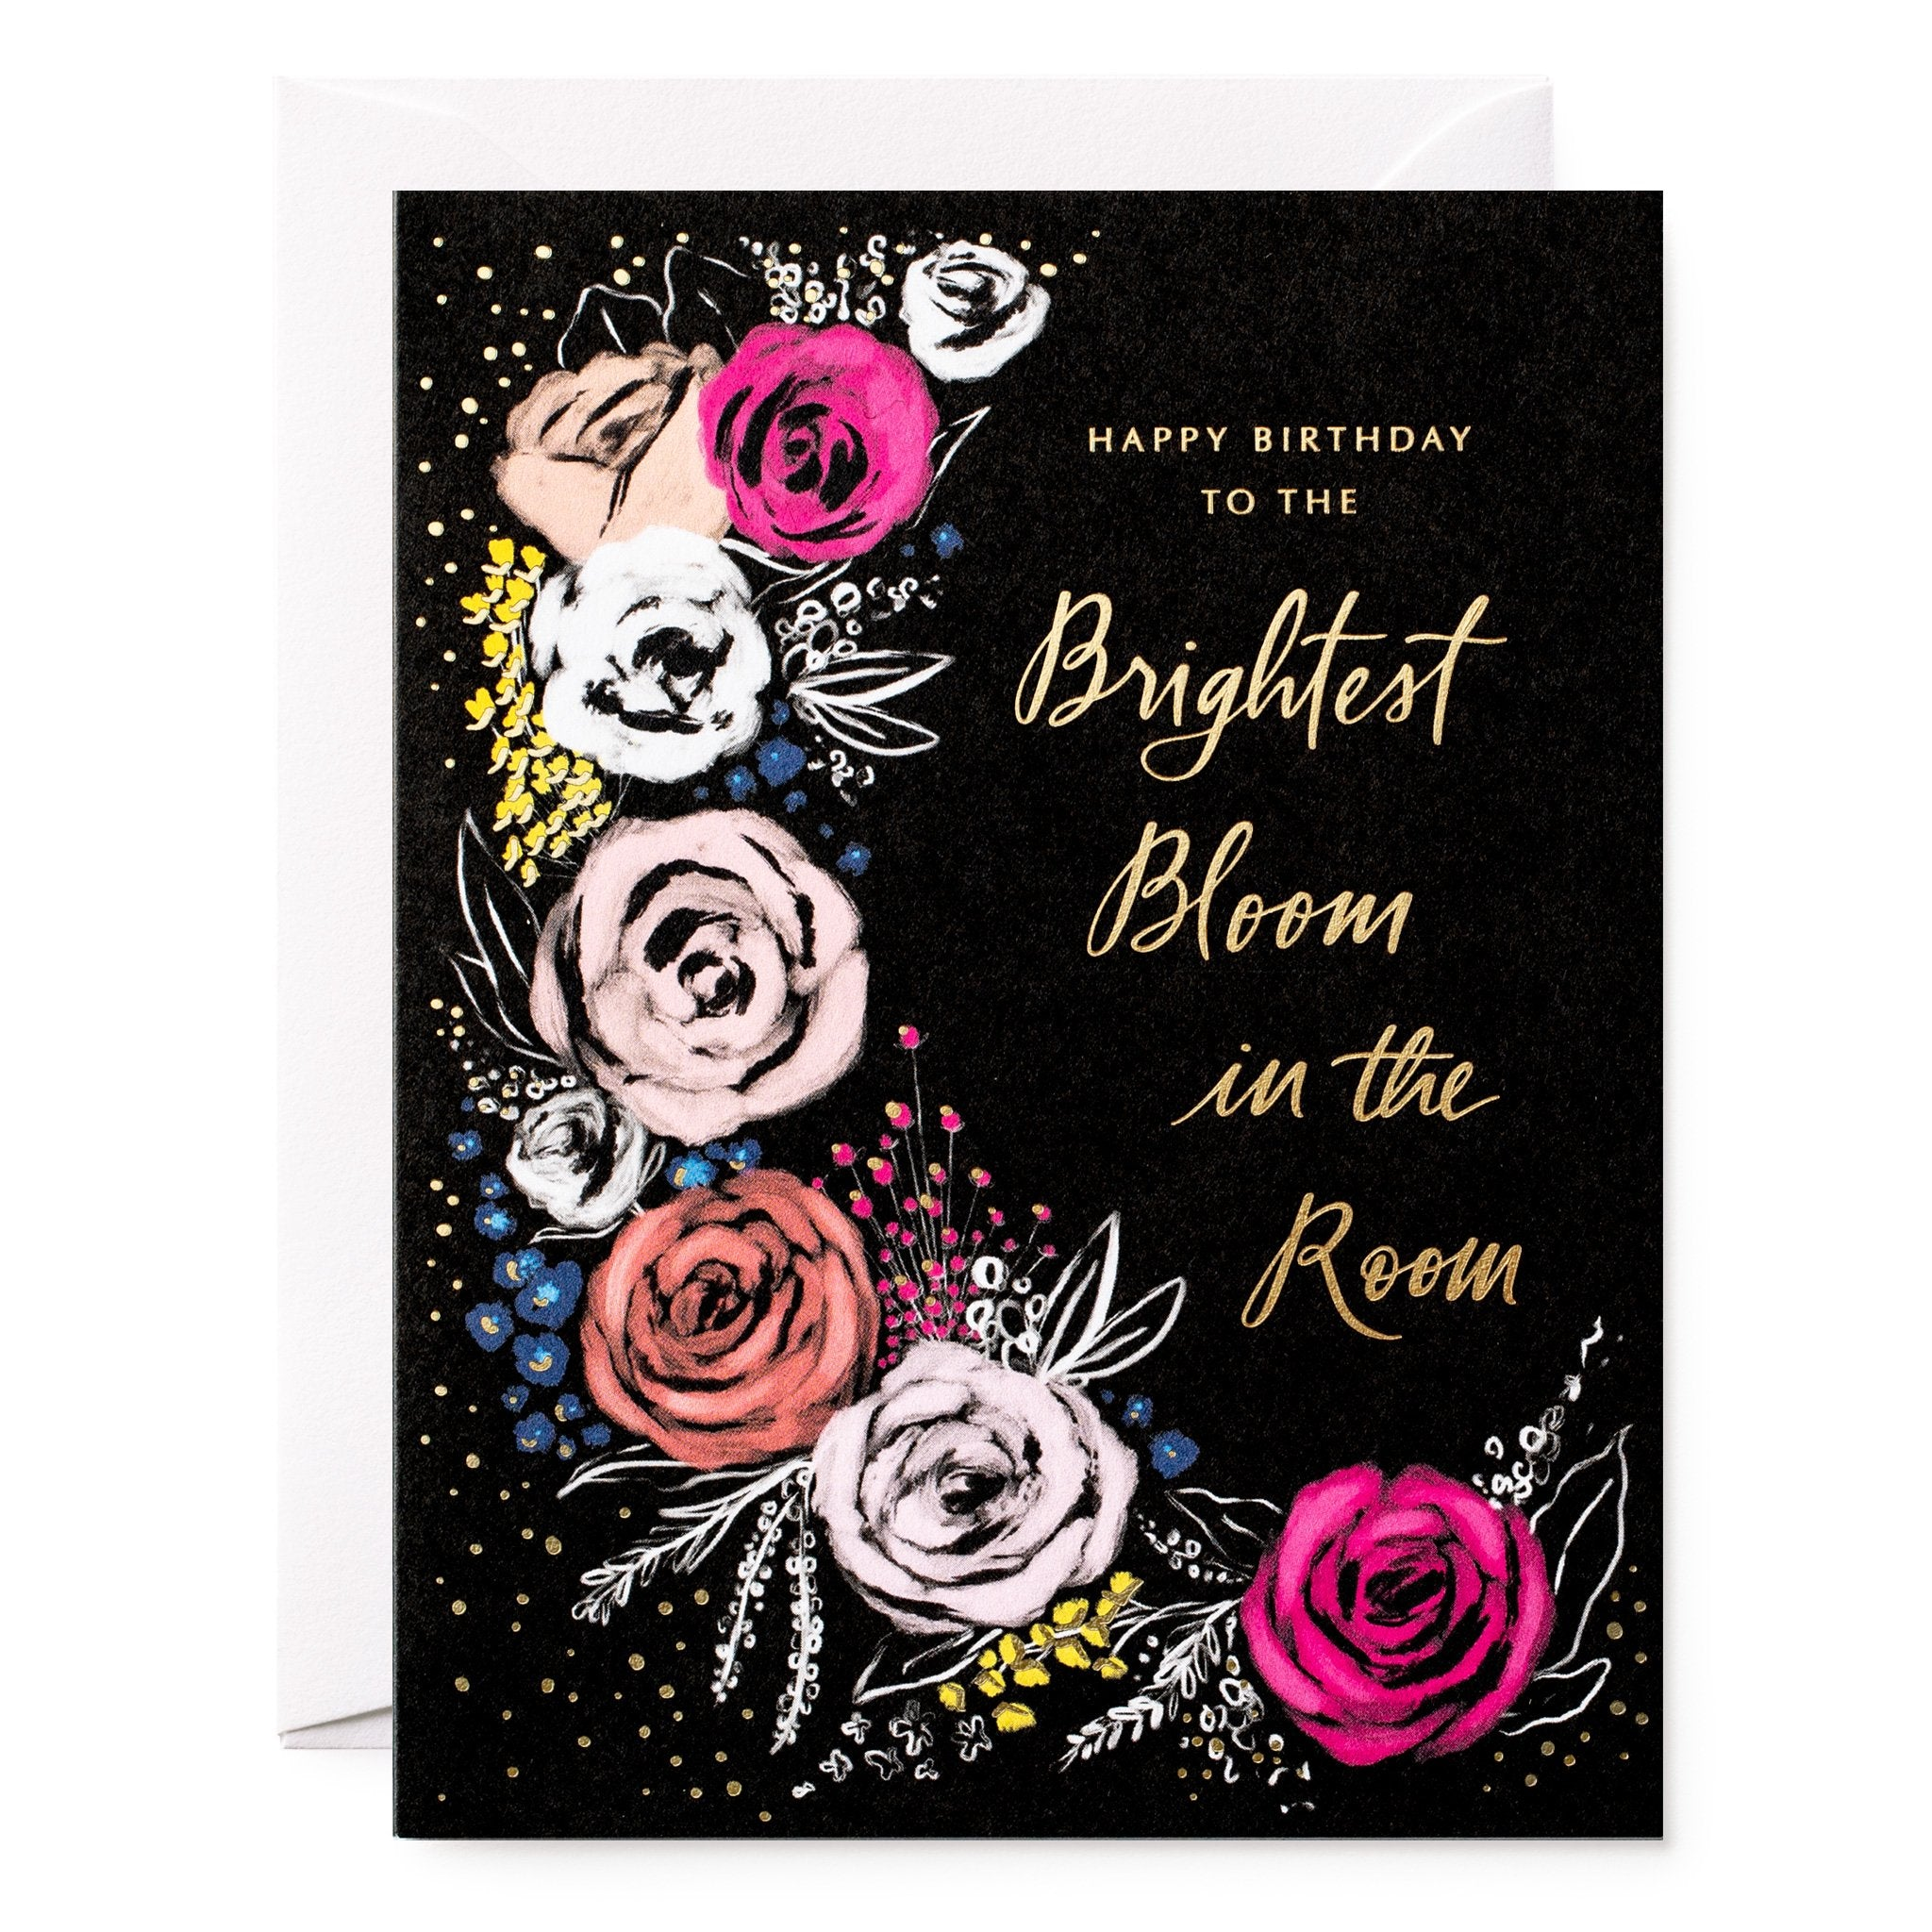 brightest bloom birthday card